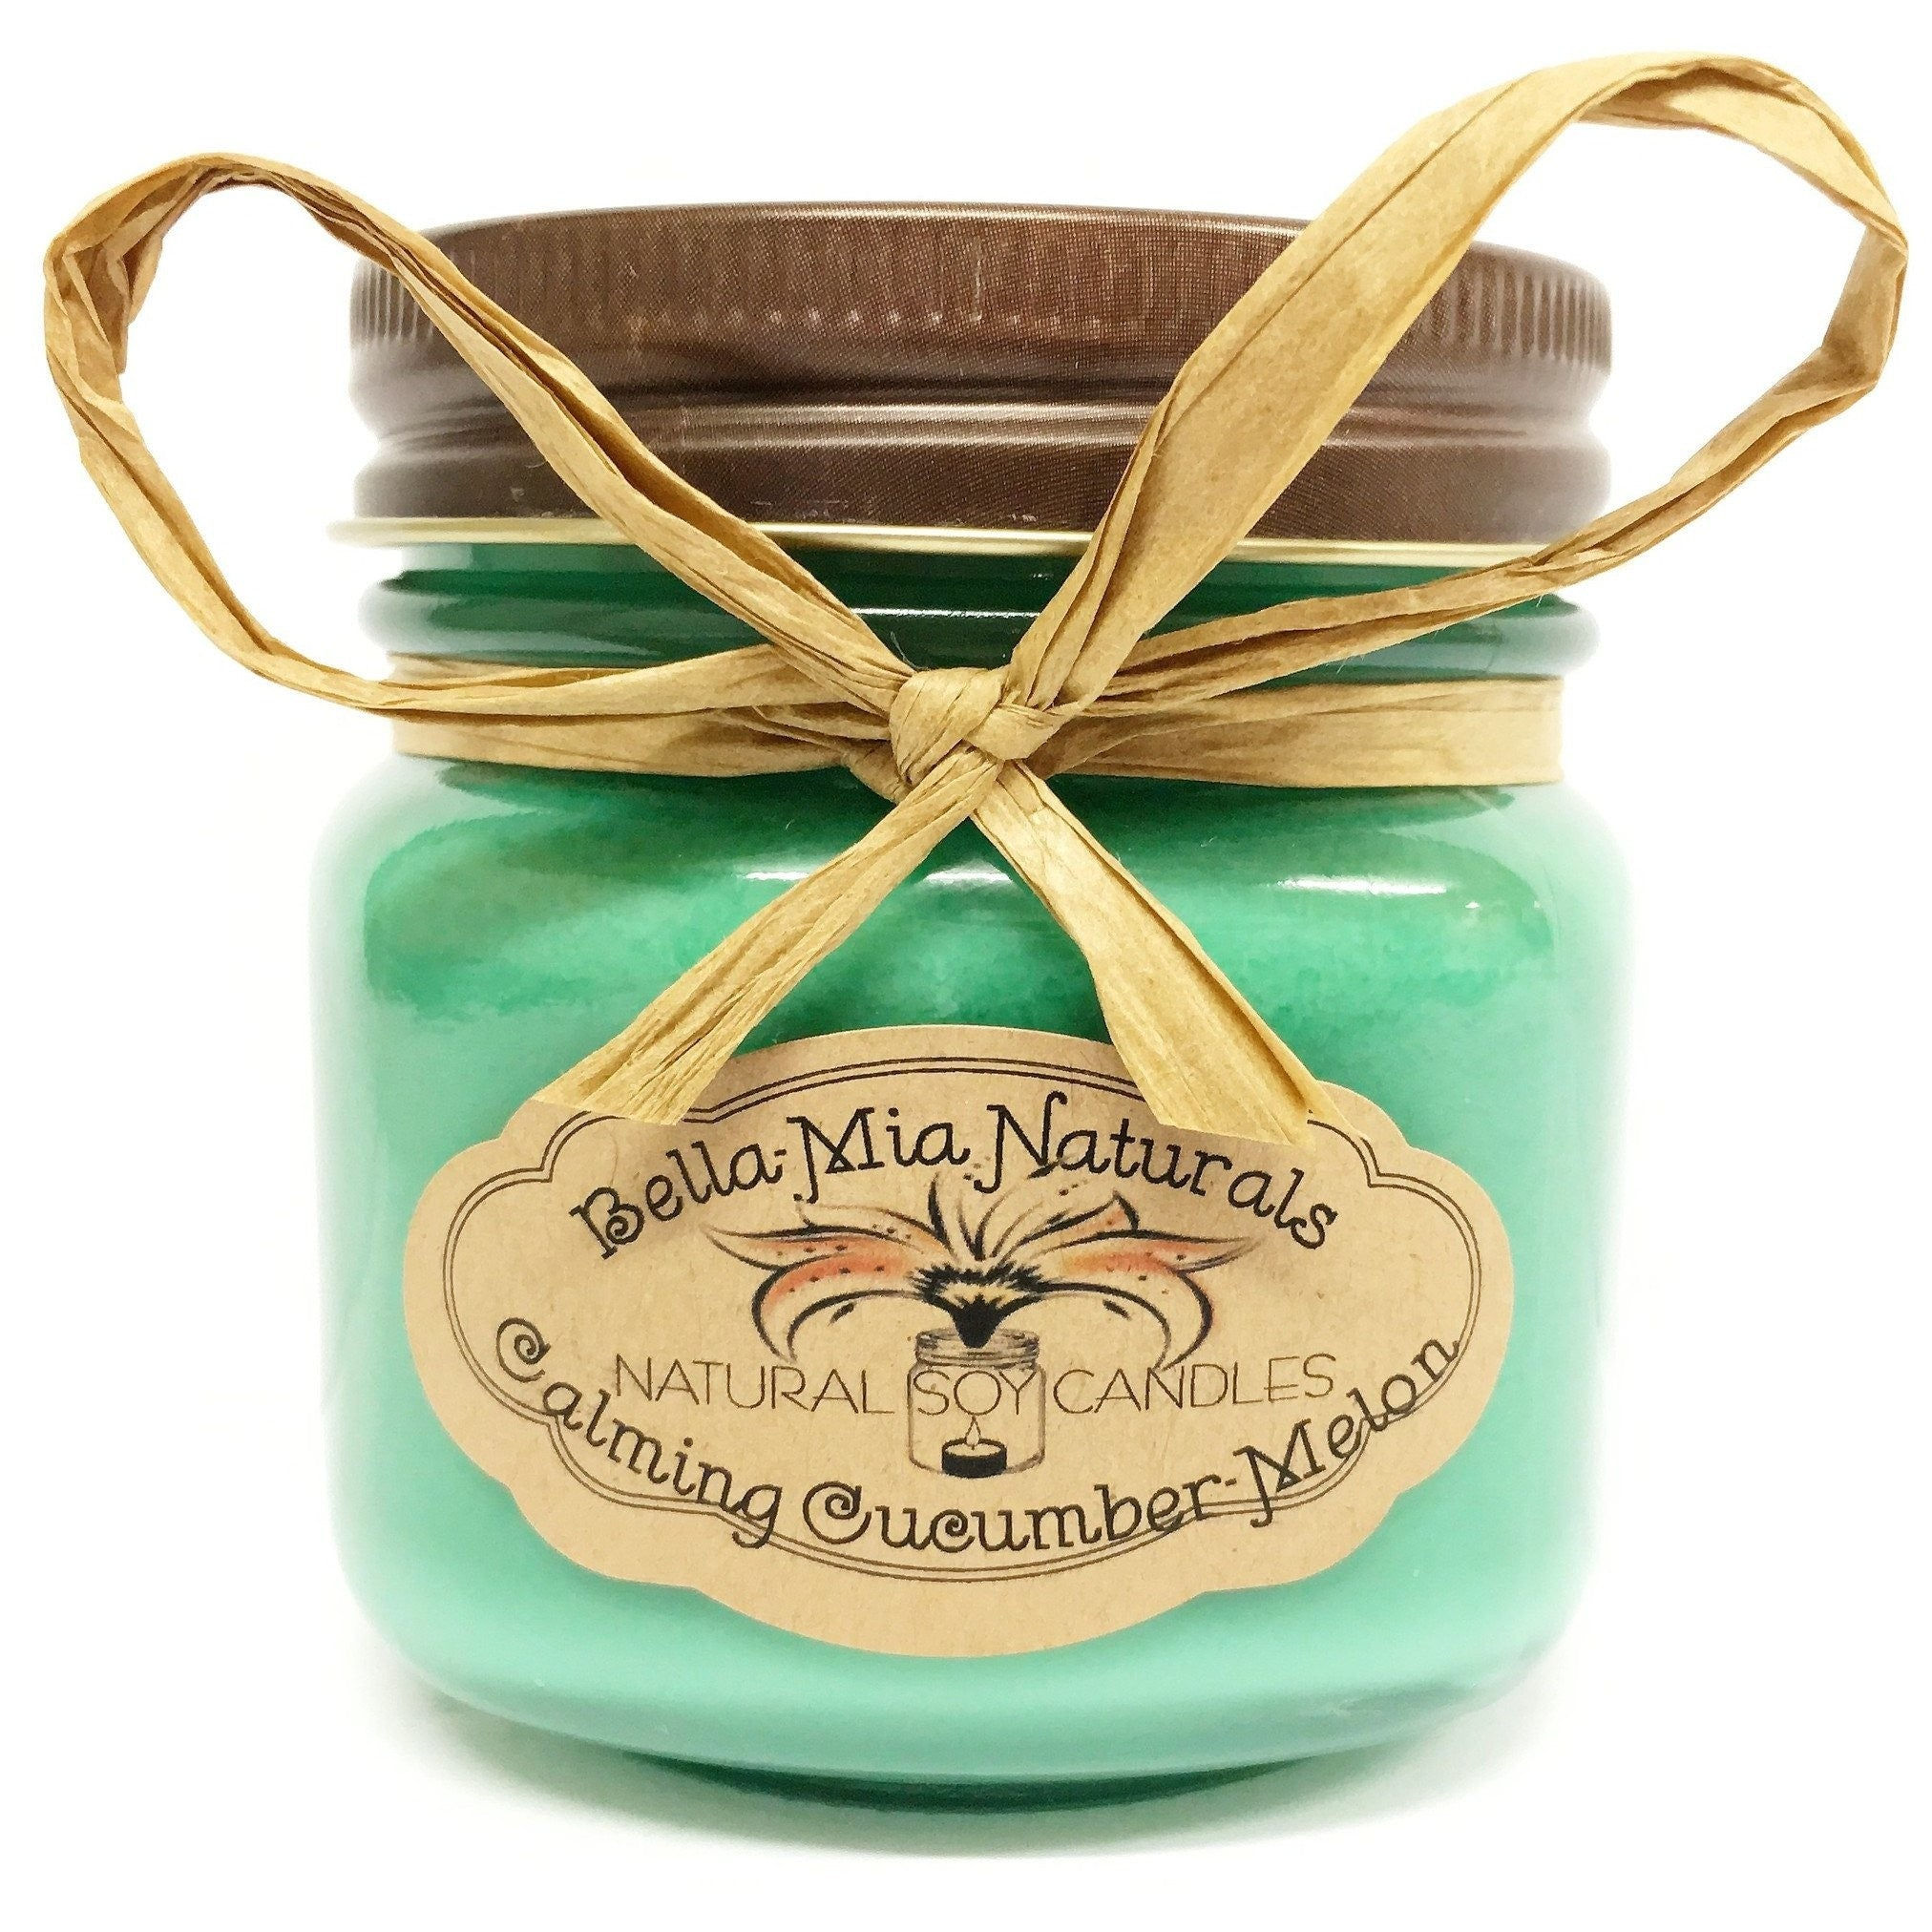 Calming Cucumber-Melon Everyday Natural Soy Candles - Half-Pint - Bella-Mia Naturals All Natural Soy Candles & Lip Balms - 3